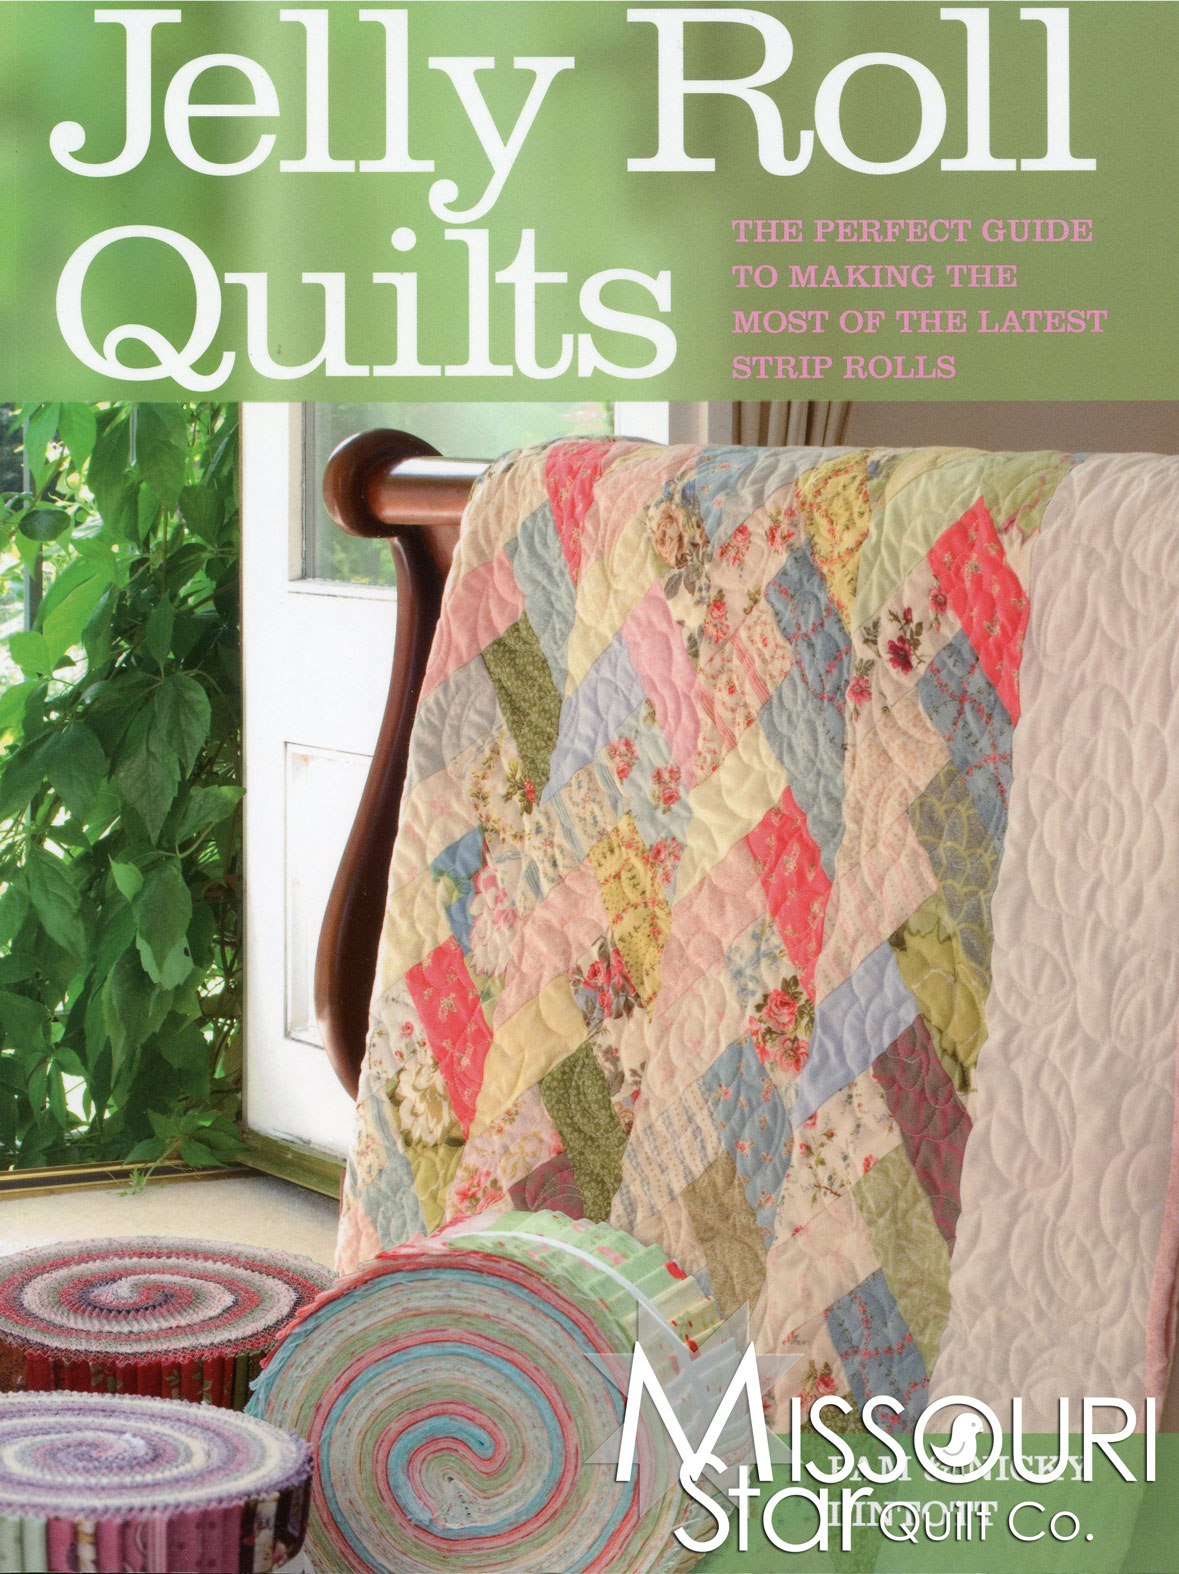 jelly roll quilts pattern book by pam nicky lintott for d c sku kr z2175 m 1469754010 66015